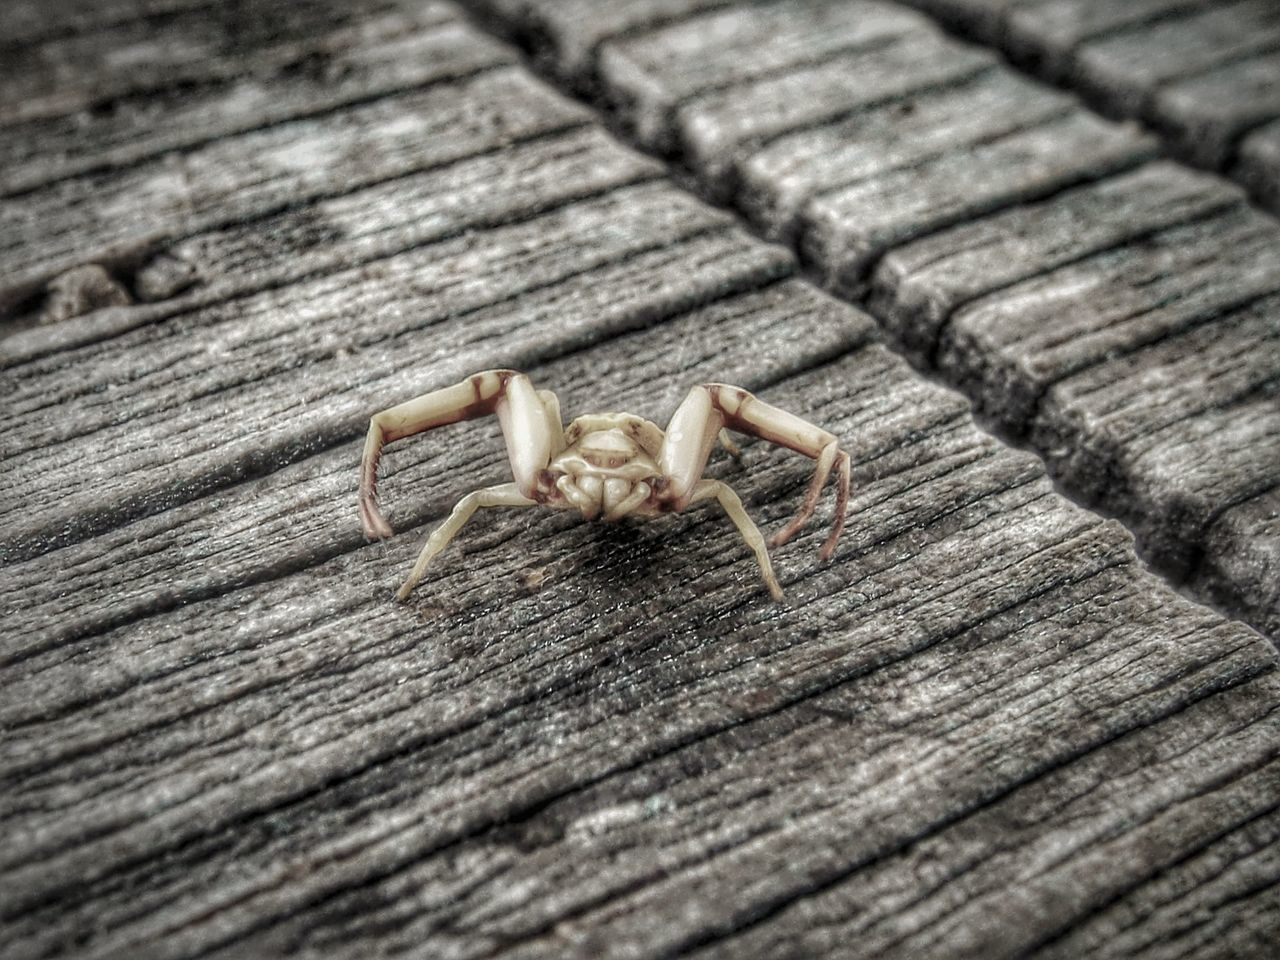 Close-Up Of Yellow Spider On Boardwalk